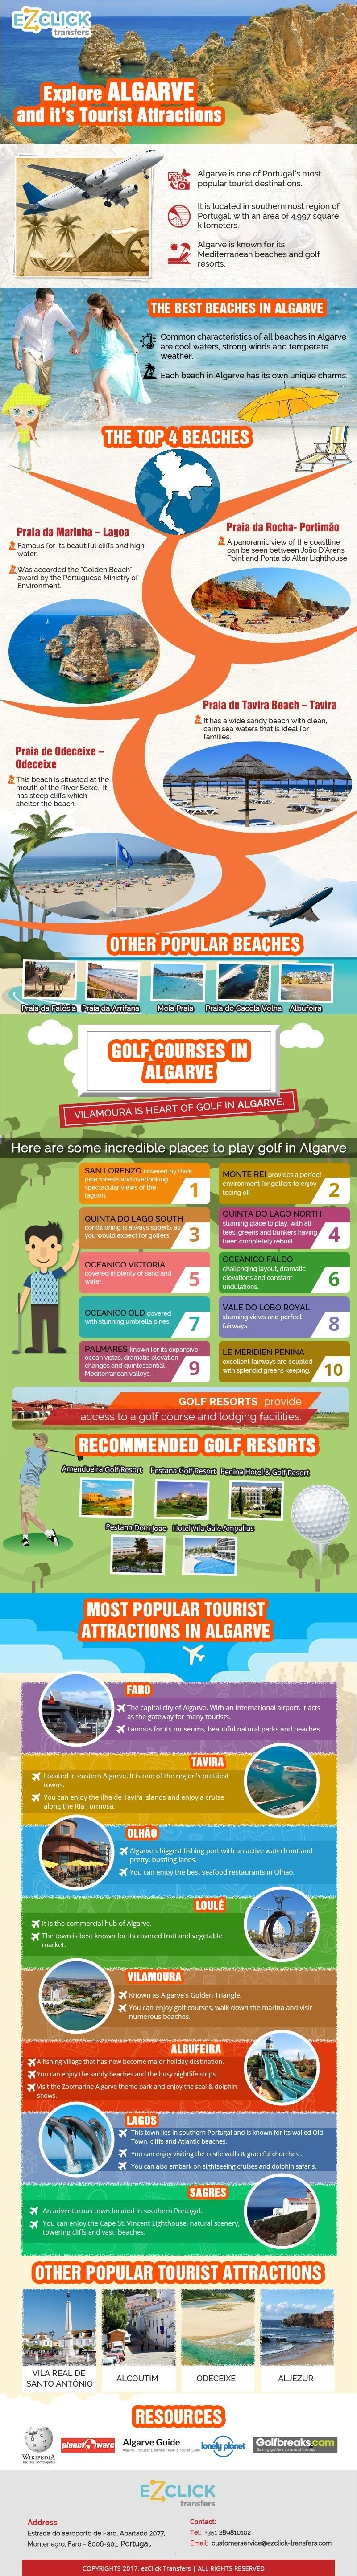 Explore Algarve And Its Tourist Attractions #infographic